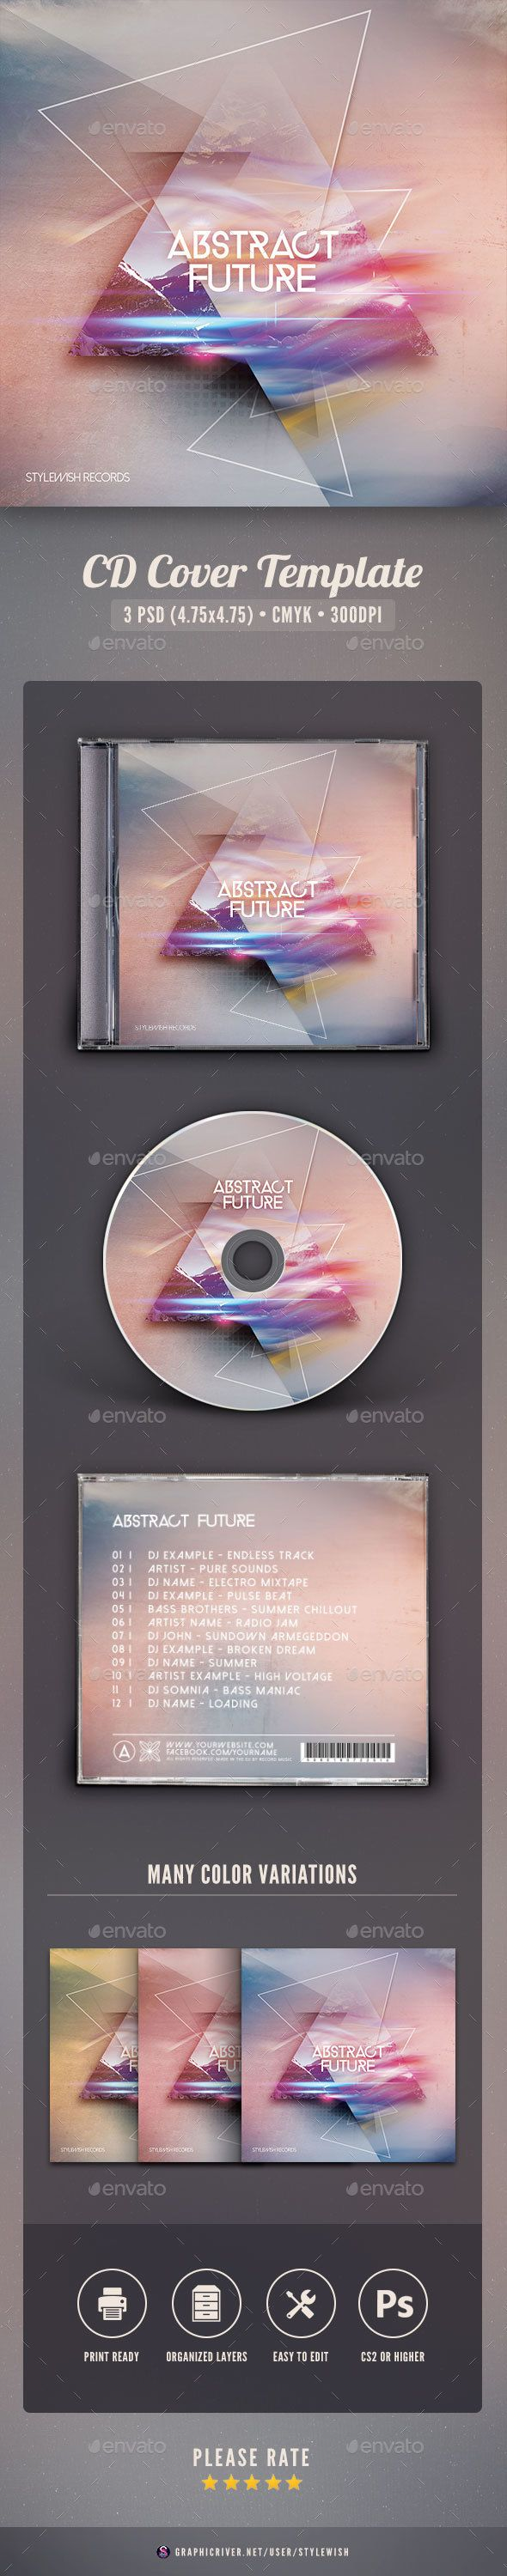 Cd box template download free vector art stock graphics amp images - Abstract Future Cd Cover Artwork